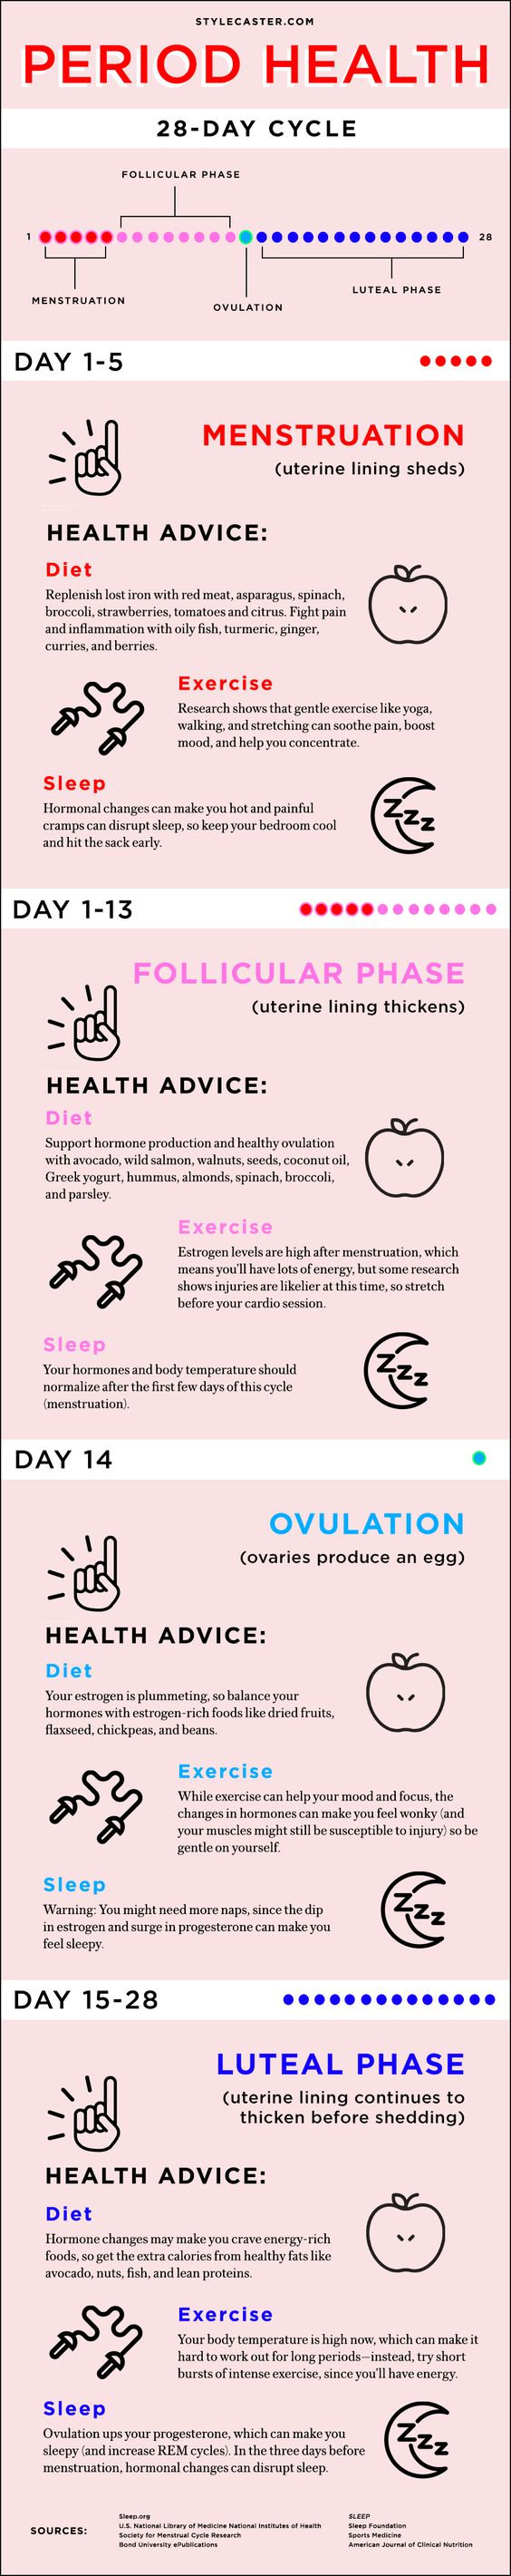 Facts About Menstruation